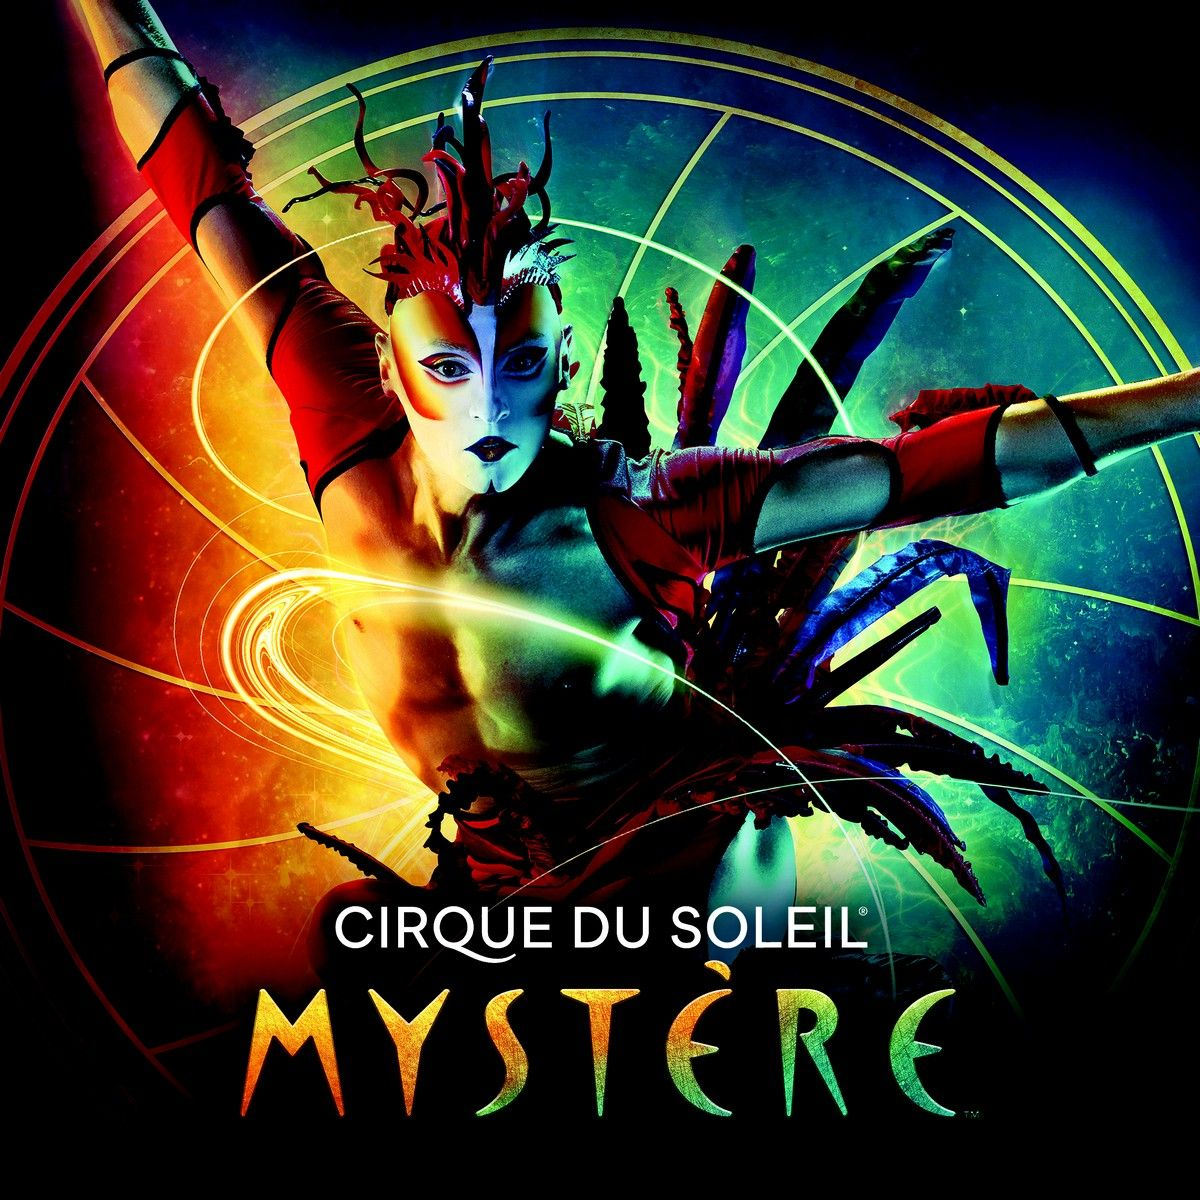 Do not miss the opportunity to see Cirque du Soleil perform live on the tour% Buyer Guarantee · Safe SSL Checkout · Instant Downloads · Daily Phone SupportTypes: Sports Tickets, Theatre Tickets, Concert Tickets, Family Show Tickets.